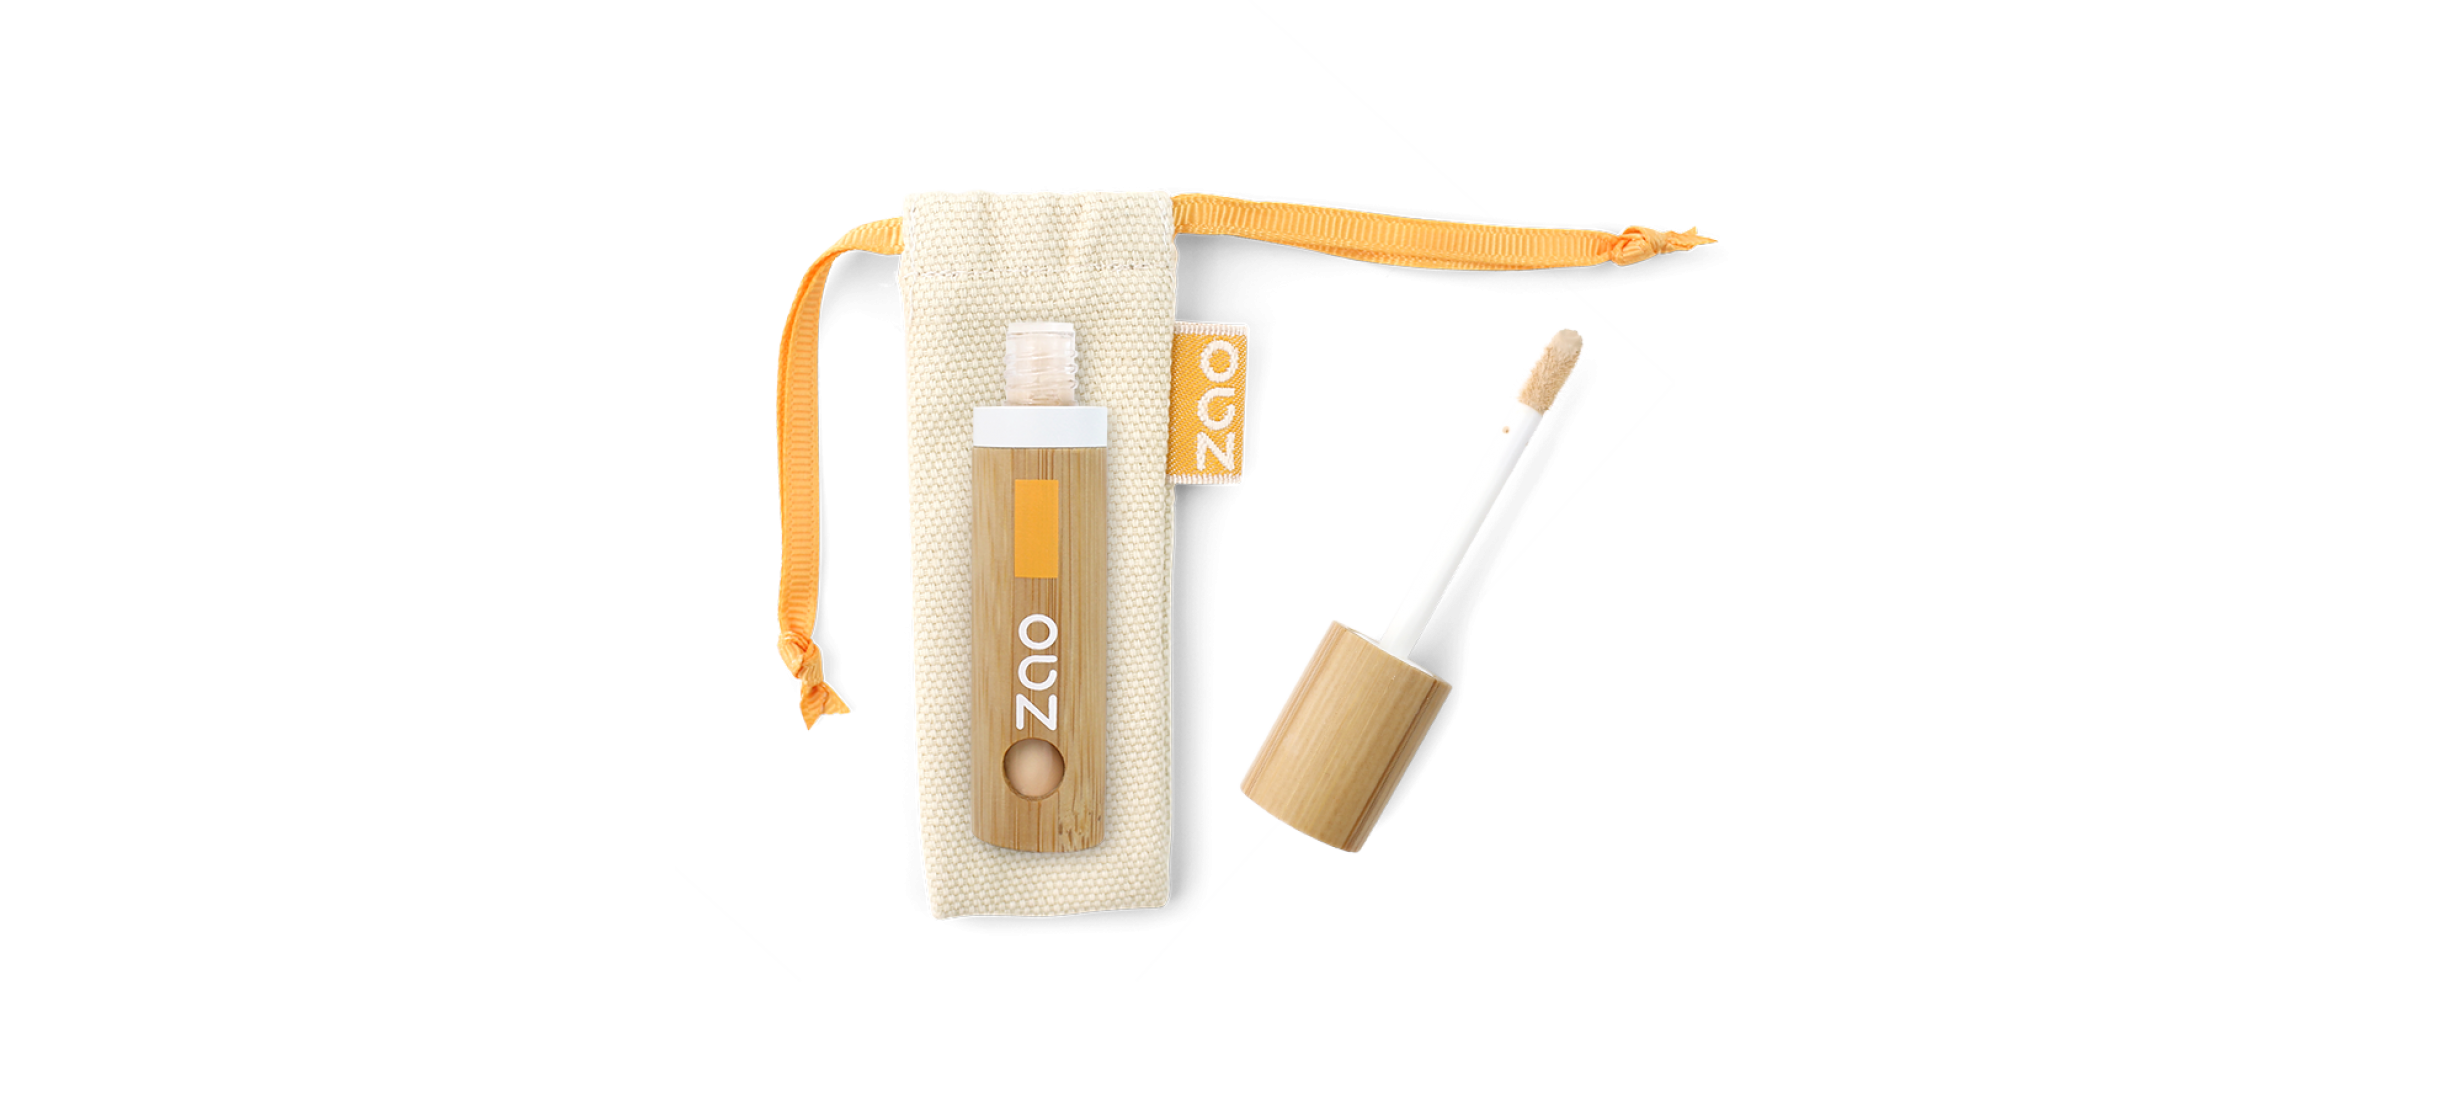 ЦВЯТ Light touch complexion: 722 Sand